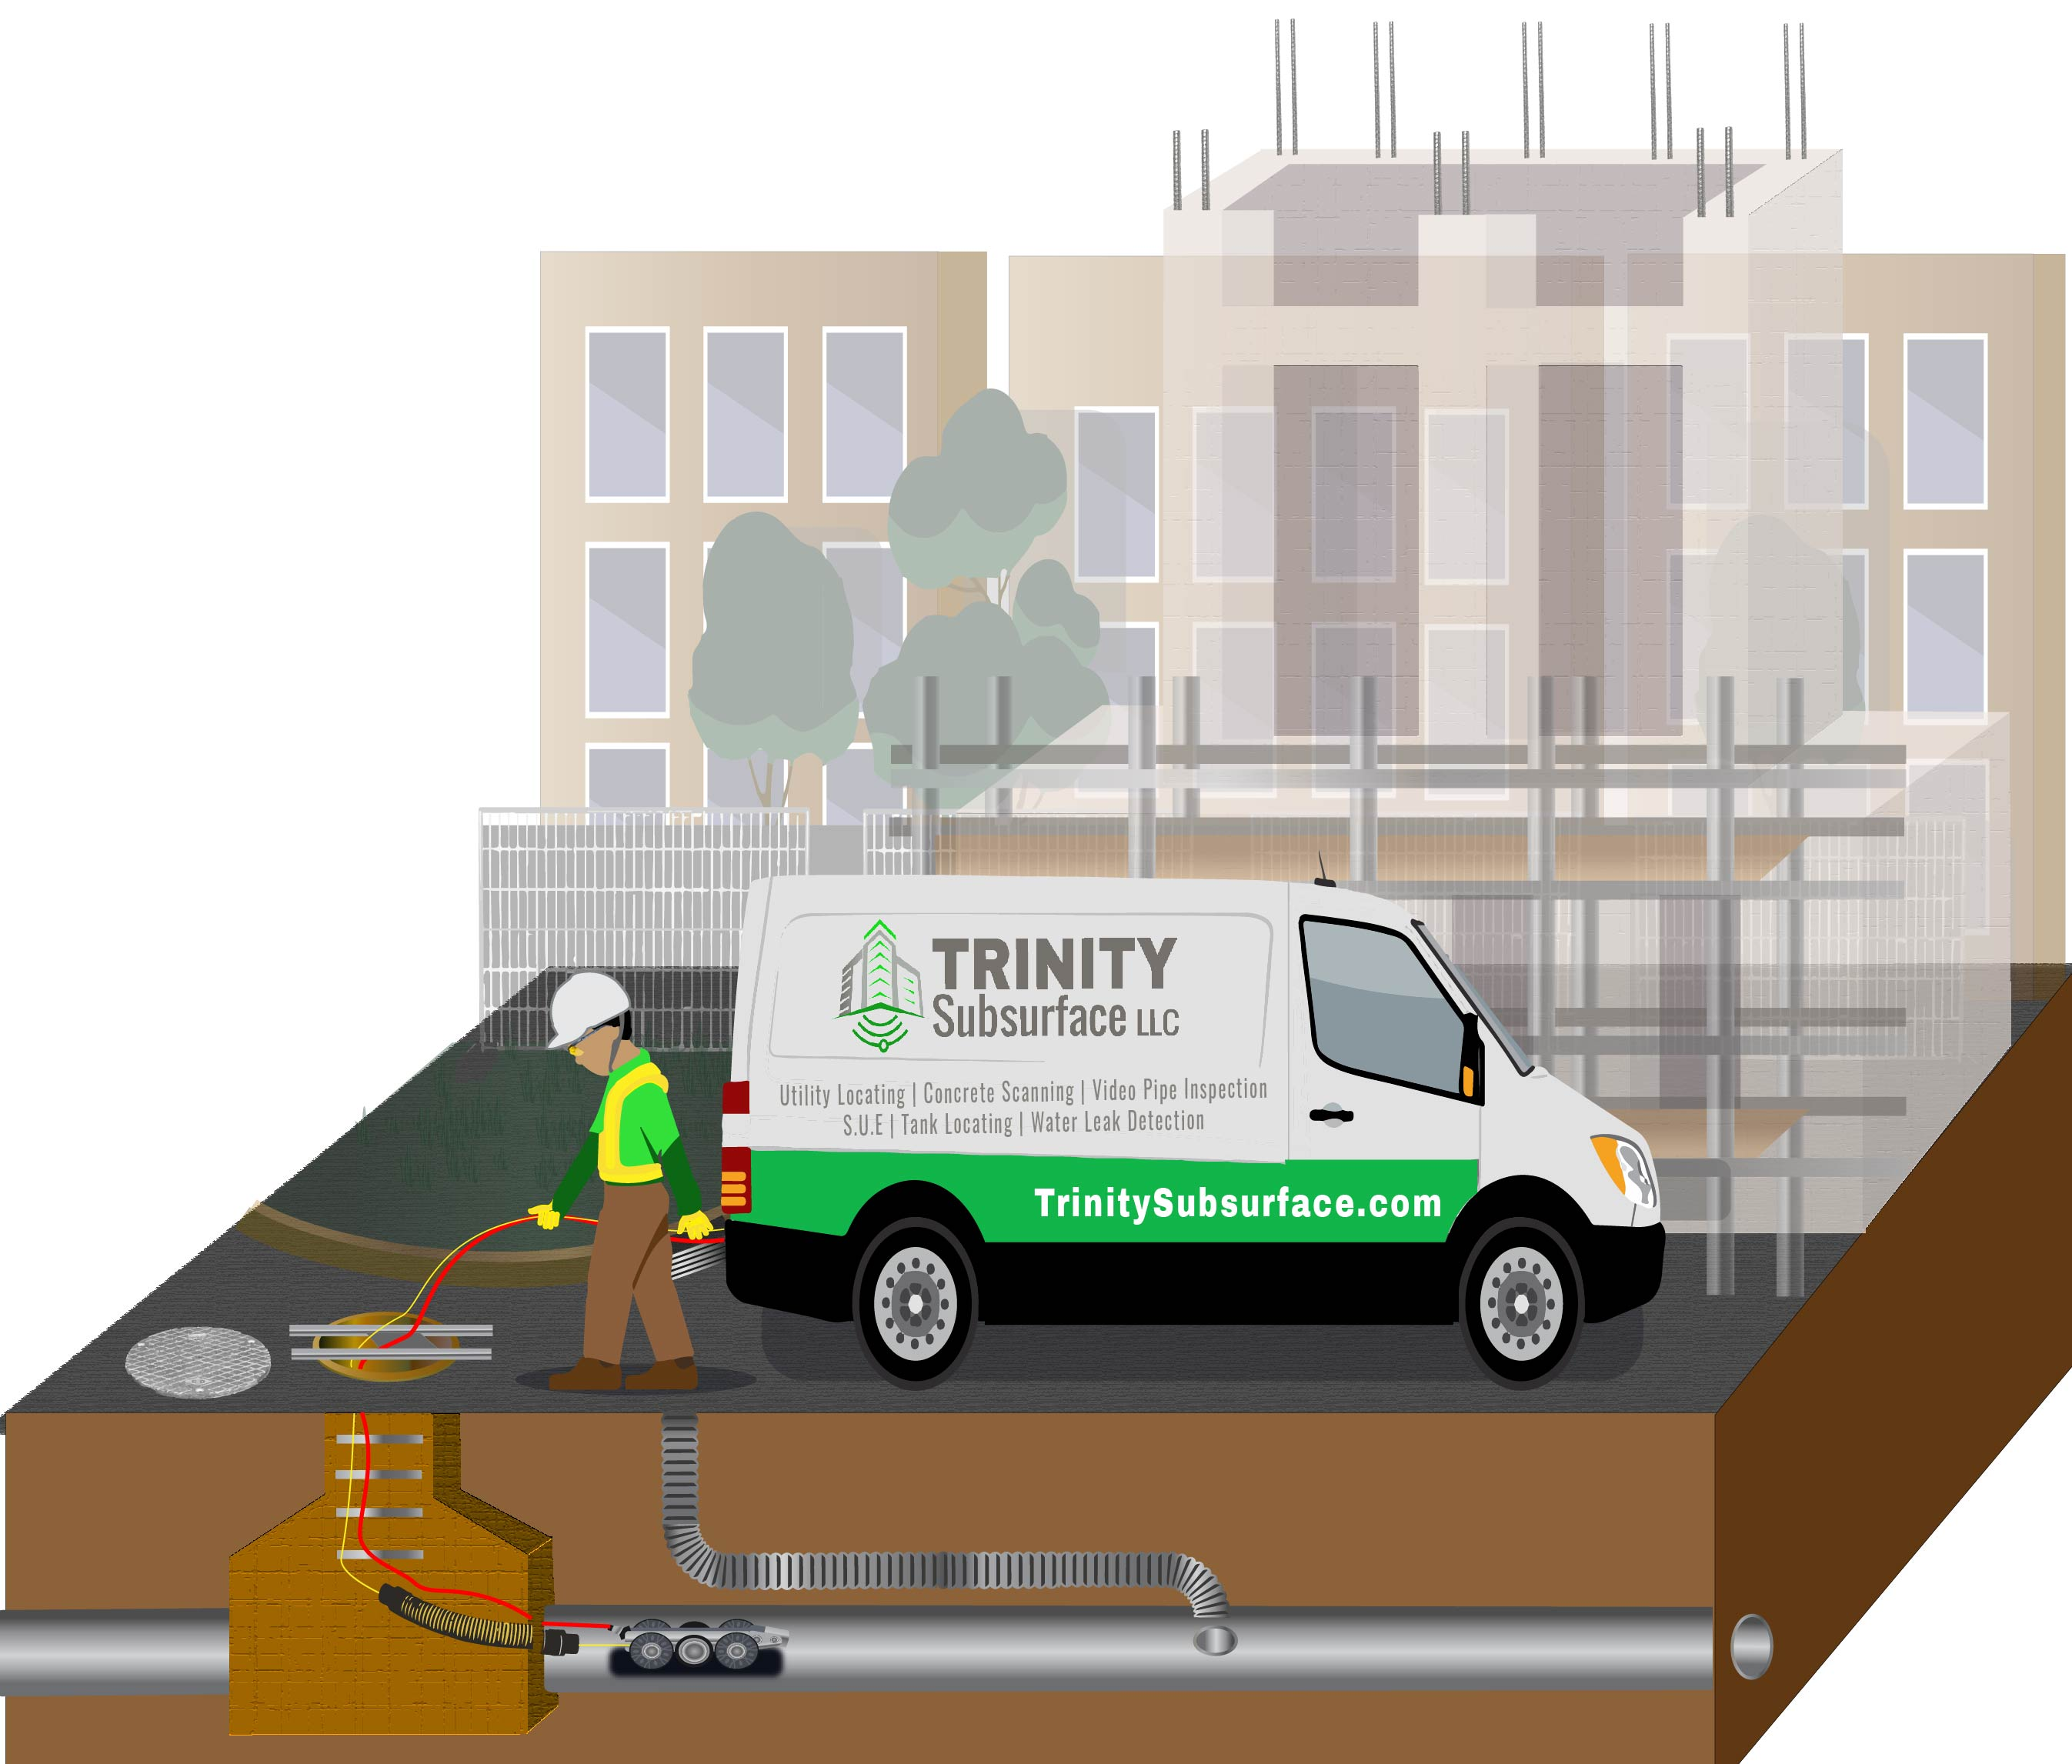 trinity subsurface schedules work for video pipe inspection for contractors in diagram